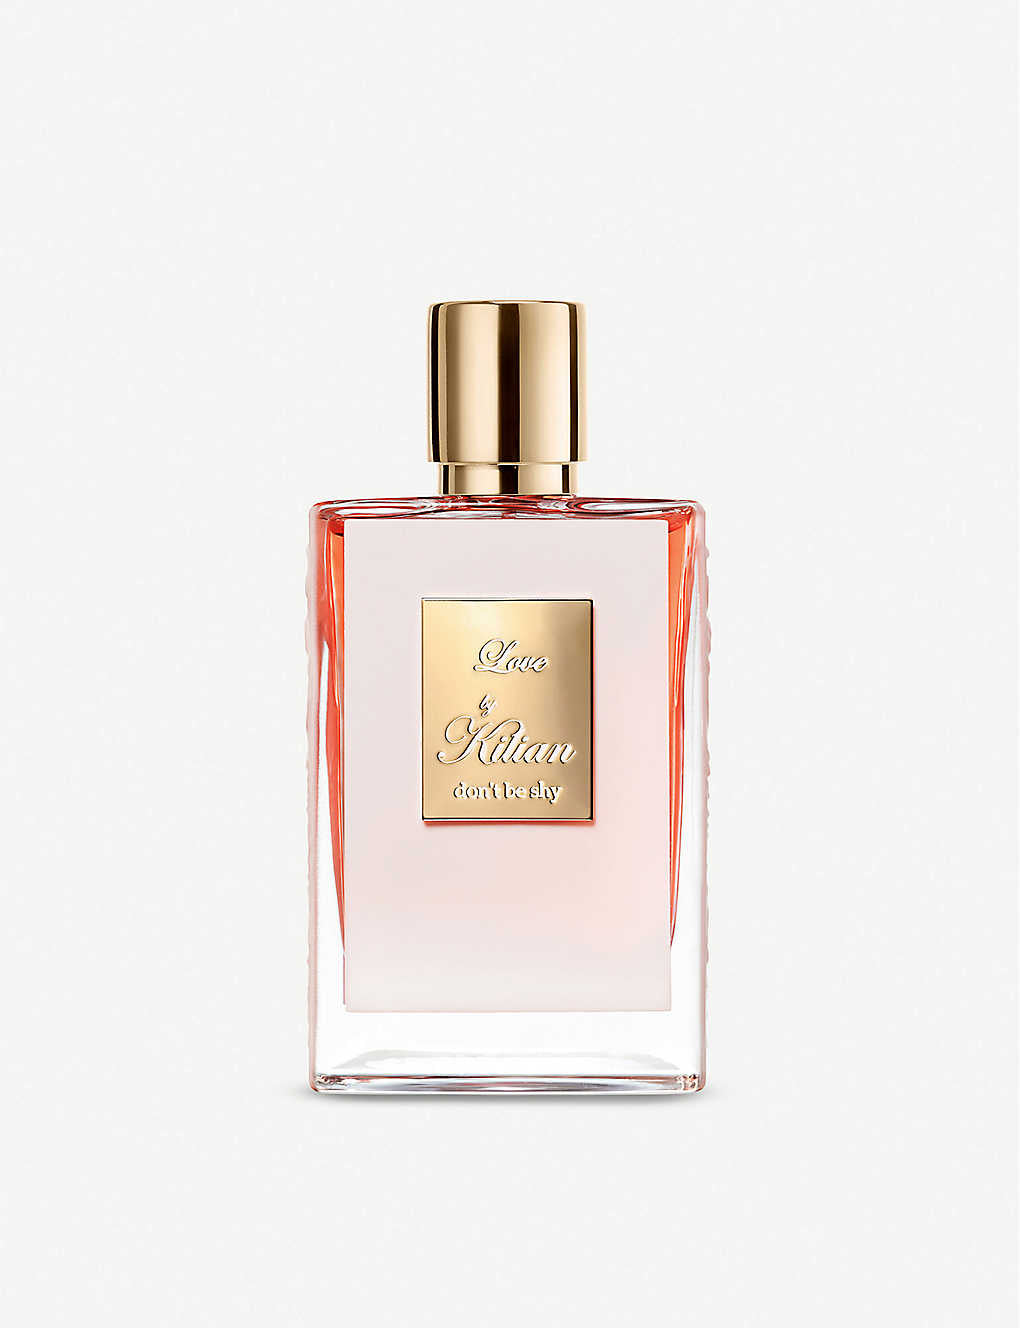 Love Don't Be Shy Eau de Parfum by Kilian